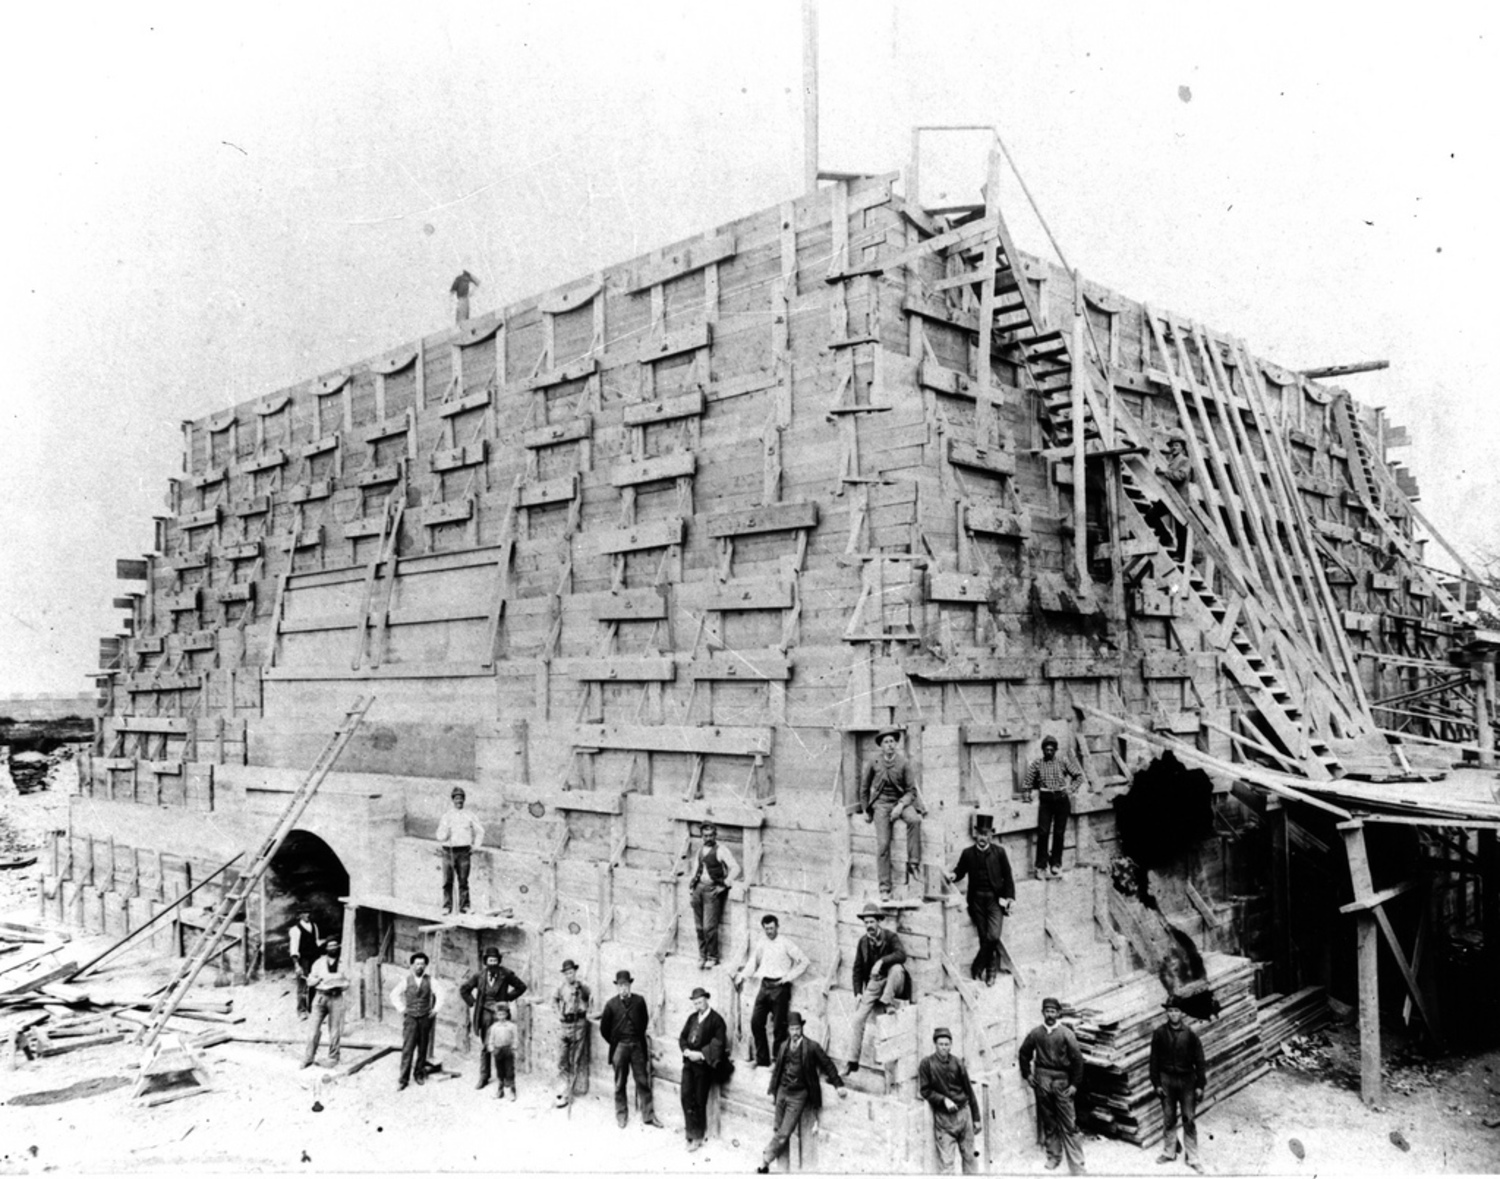 Workers at the monument's base, 1884. The United States was responsible for building and funding the pedestal, which stands at 154 feet, just a few feet taller than the statue.